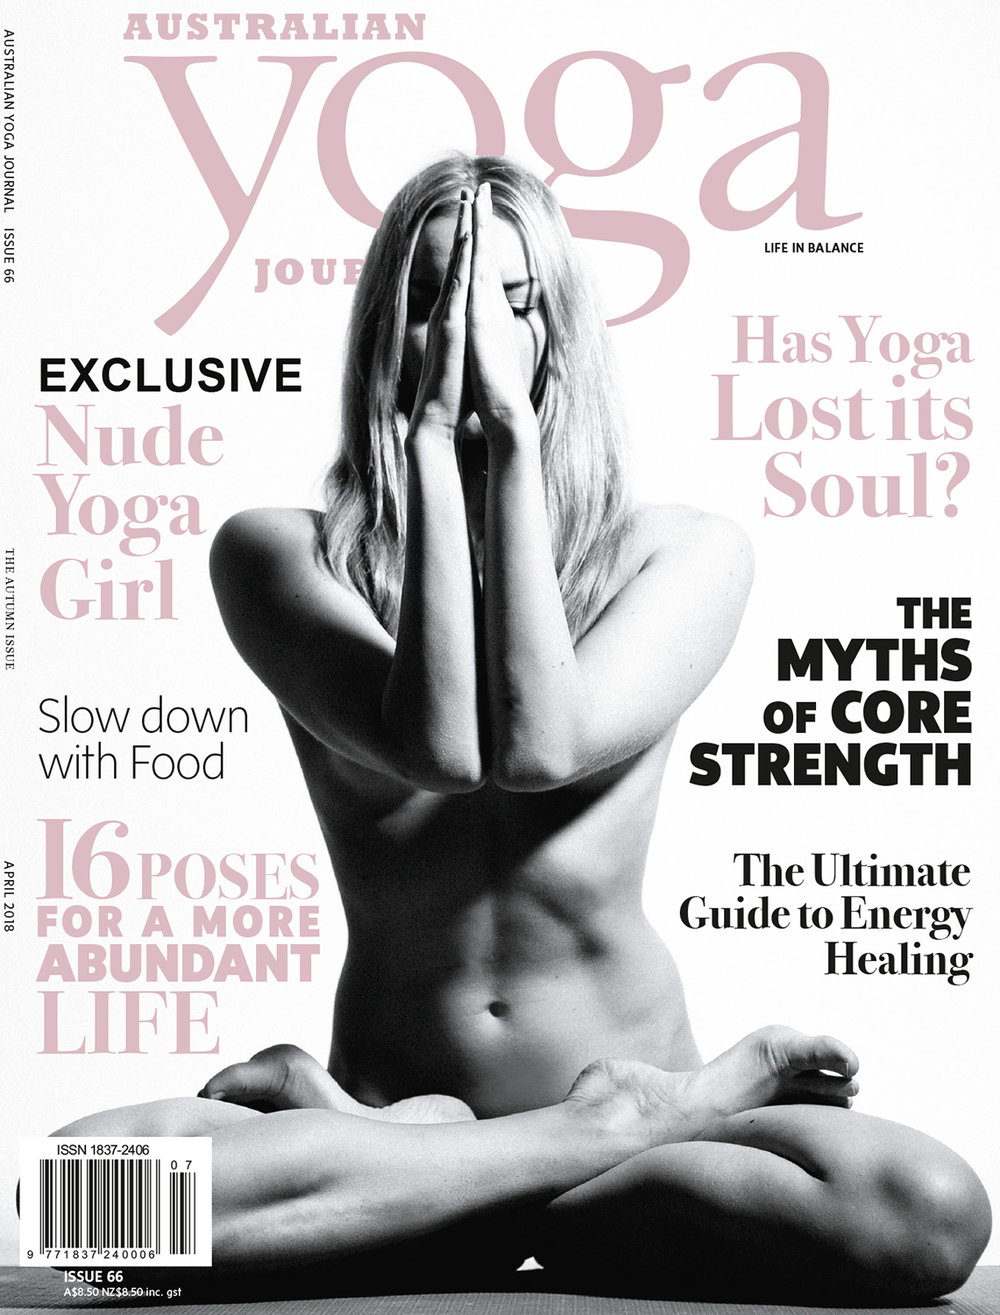 Australian Yoga Journal, 2018